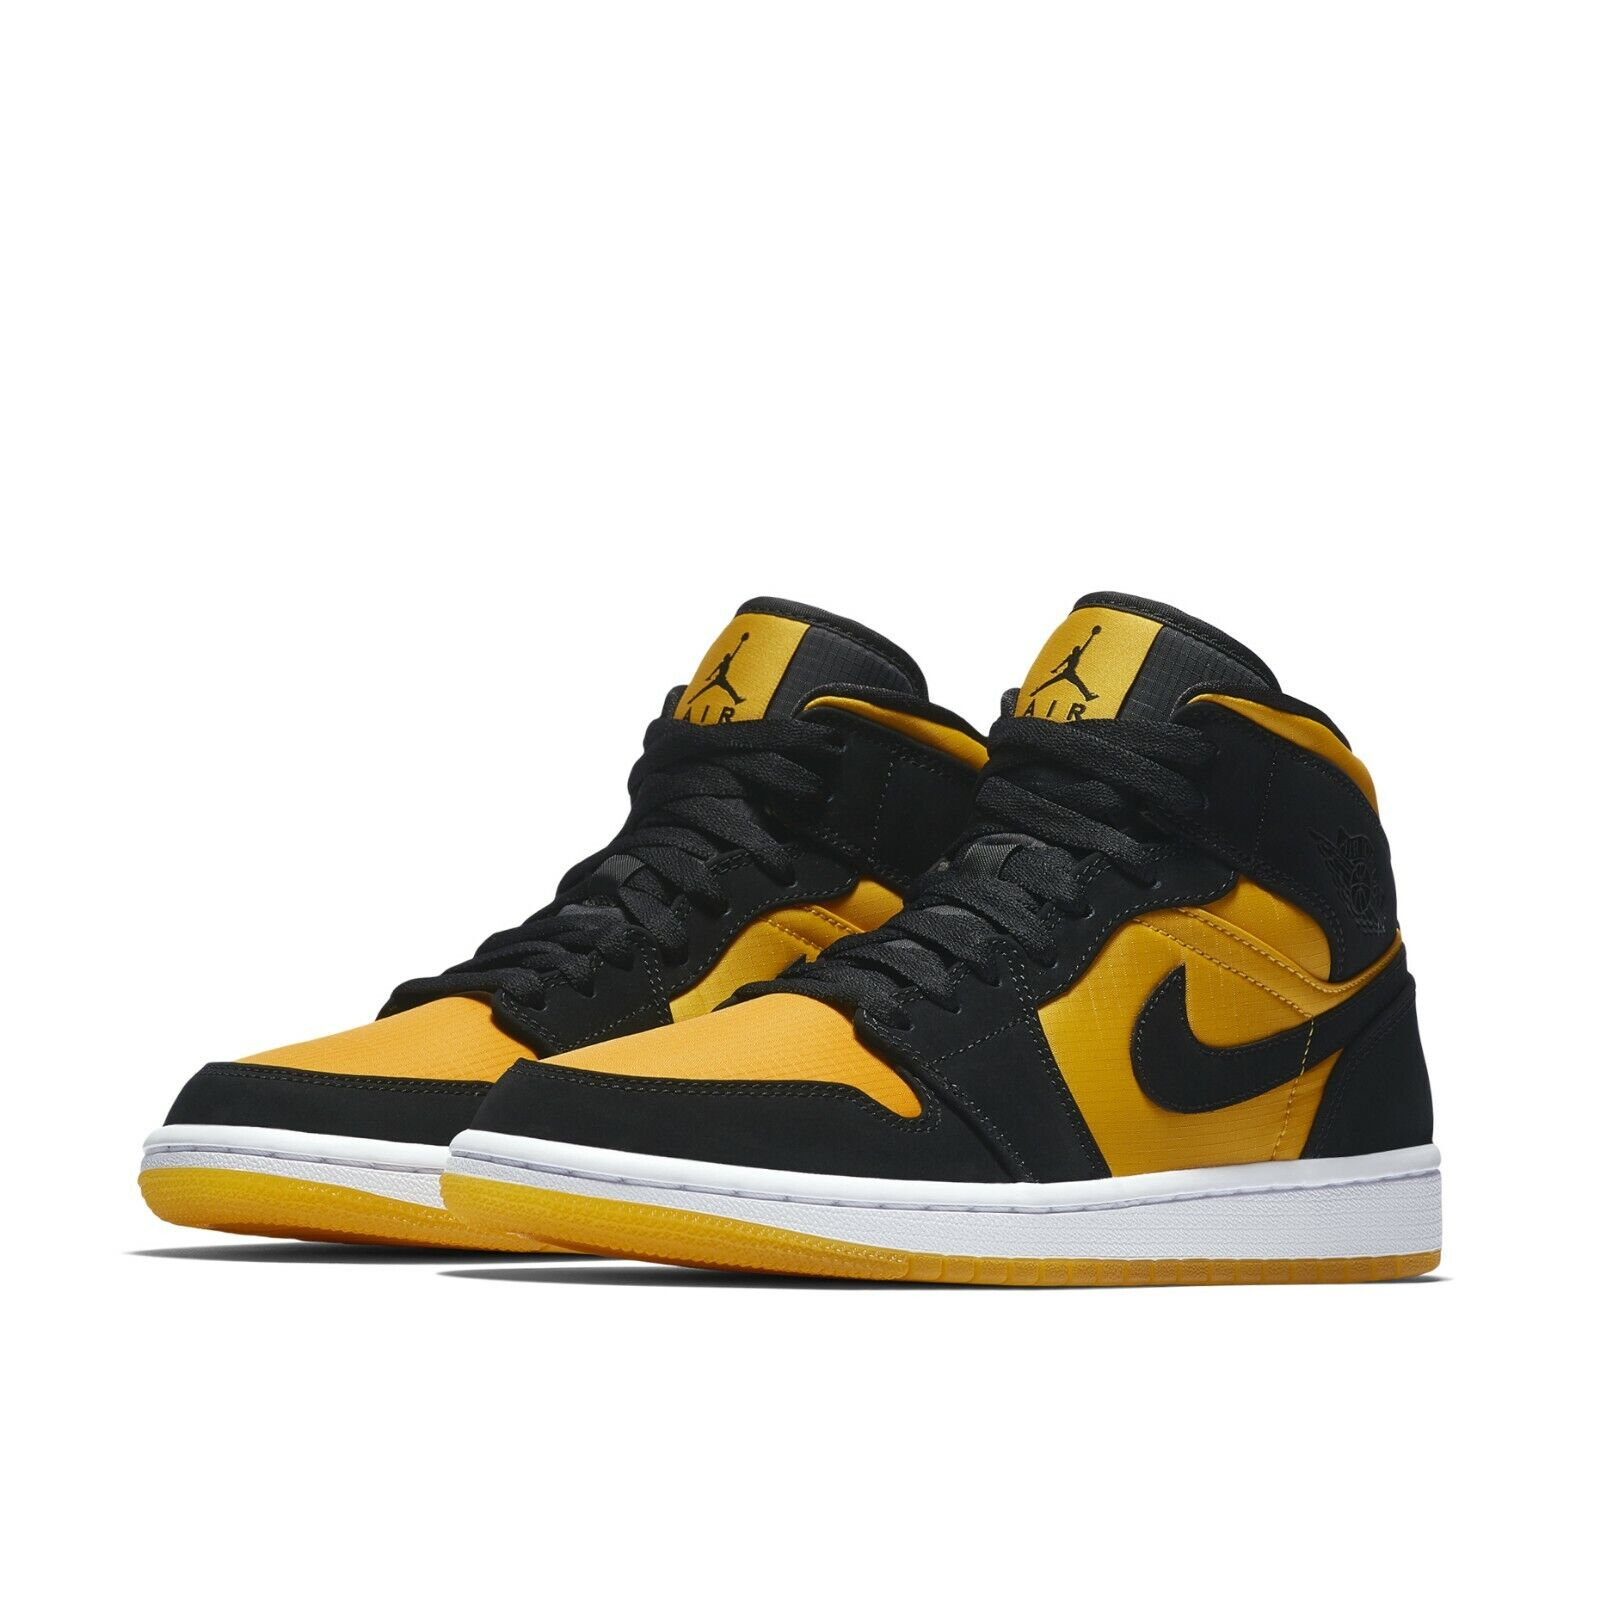 Jordan Taxi University AJ1 Gold Nike about Yellow CD6759 Air Mid 1 Black GC Details 007 SE eWH9ID2YE